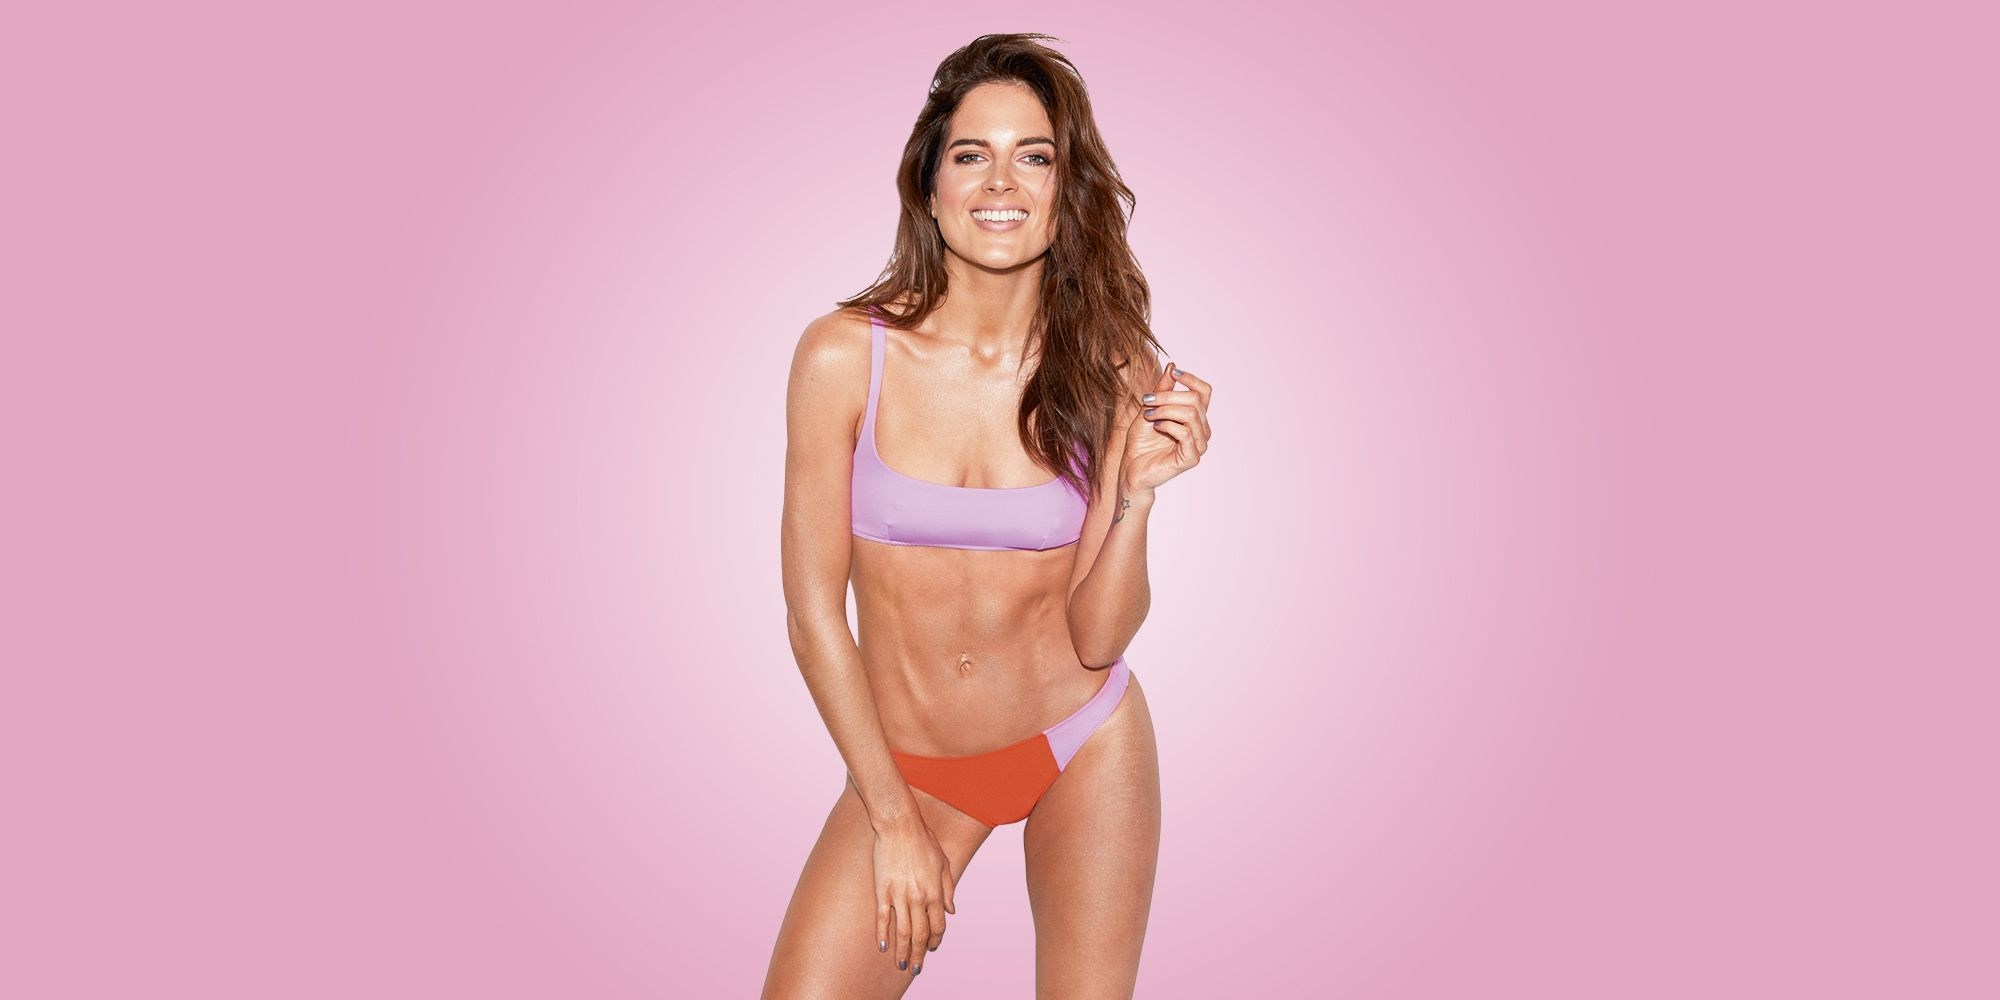 Binky Felstead's Go-To Workout is a Bodyweight HIIT Session & We Have Her Exact One For You to Try